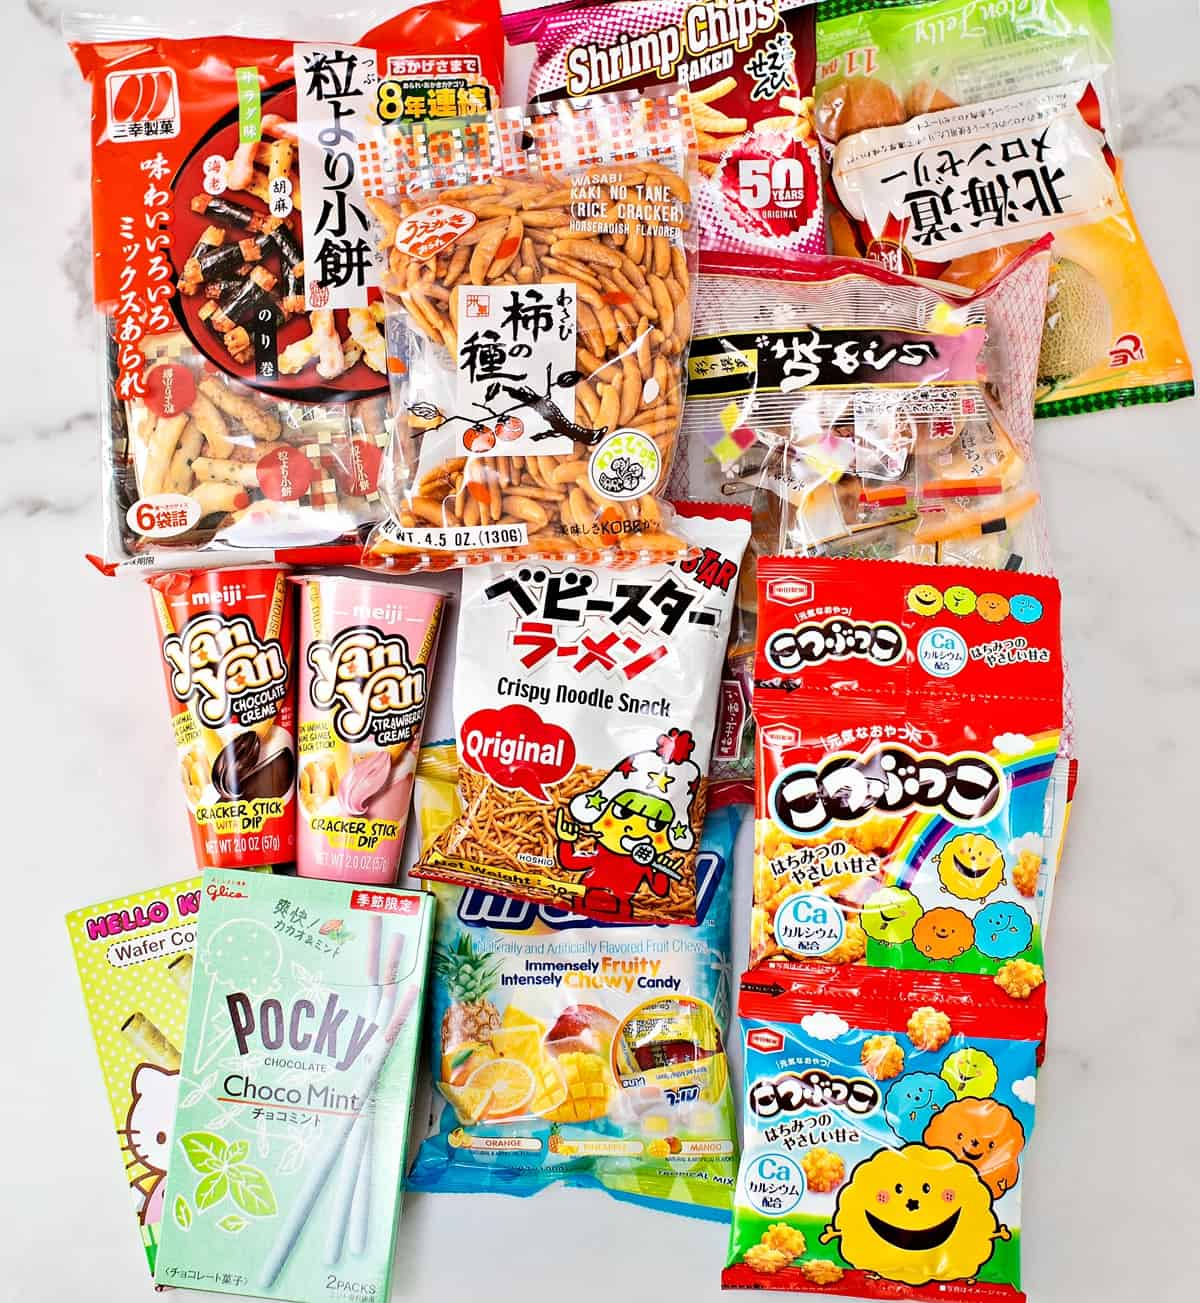 Best Chinese Asian Snacks